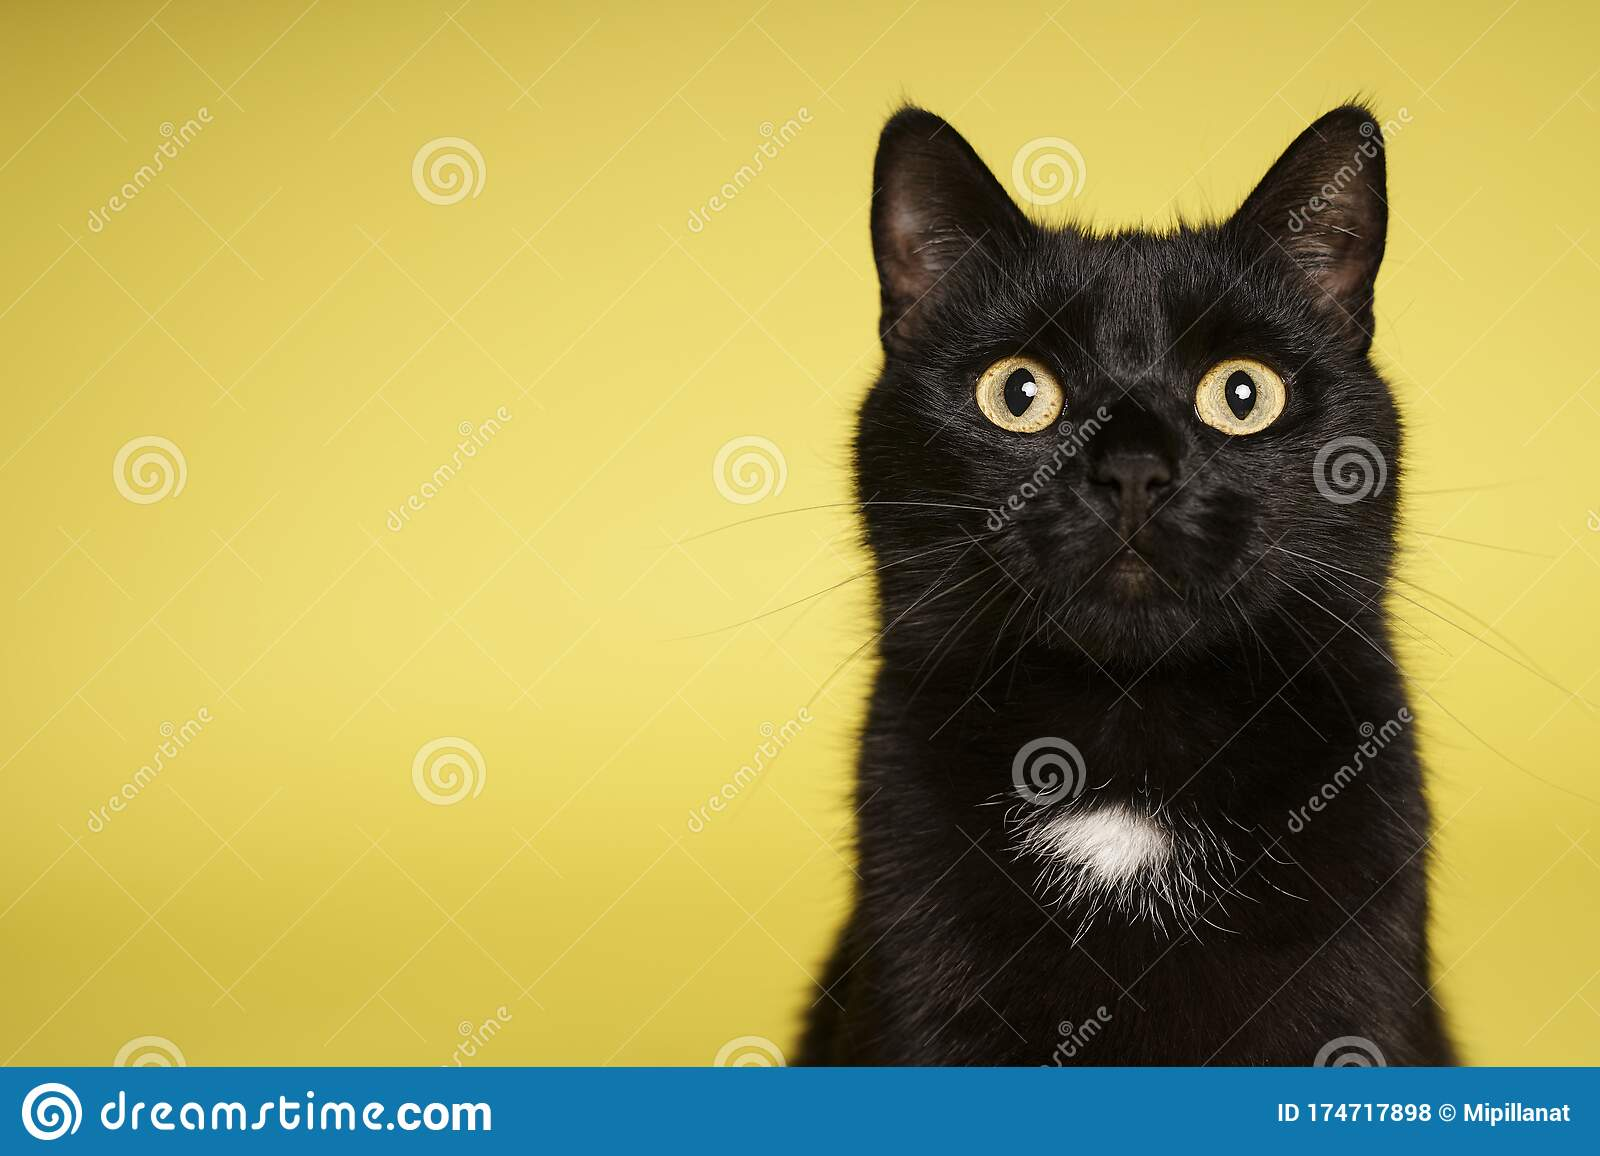 Black Cat On Yellow Background Friday 13th Stock Photo Image Of 13th Black 174717898